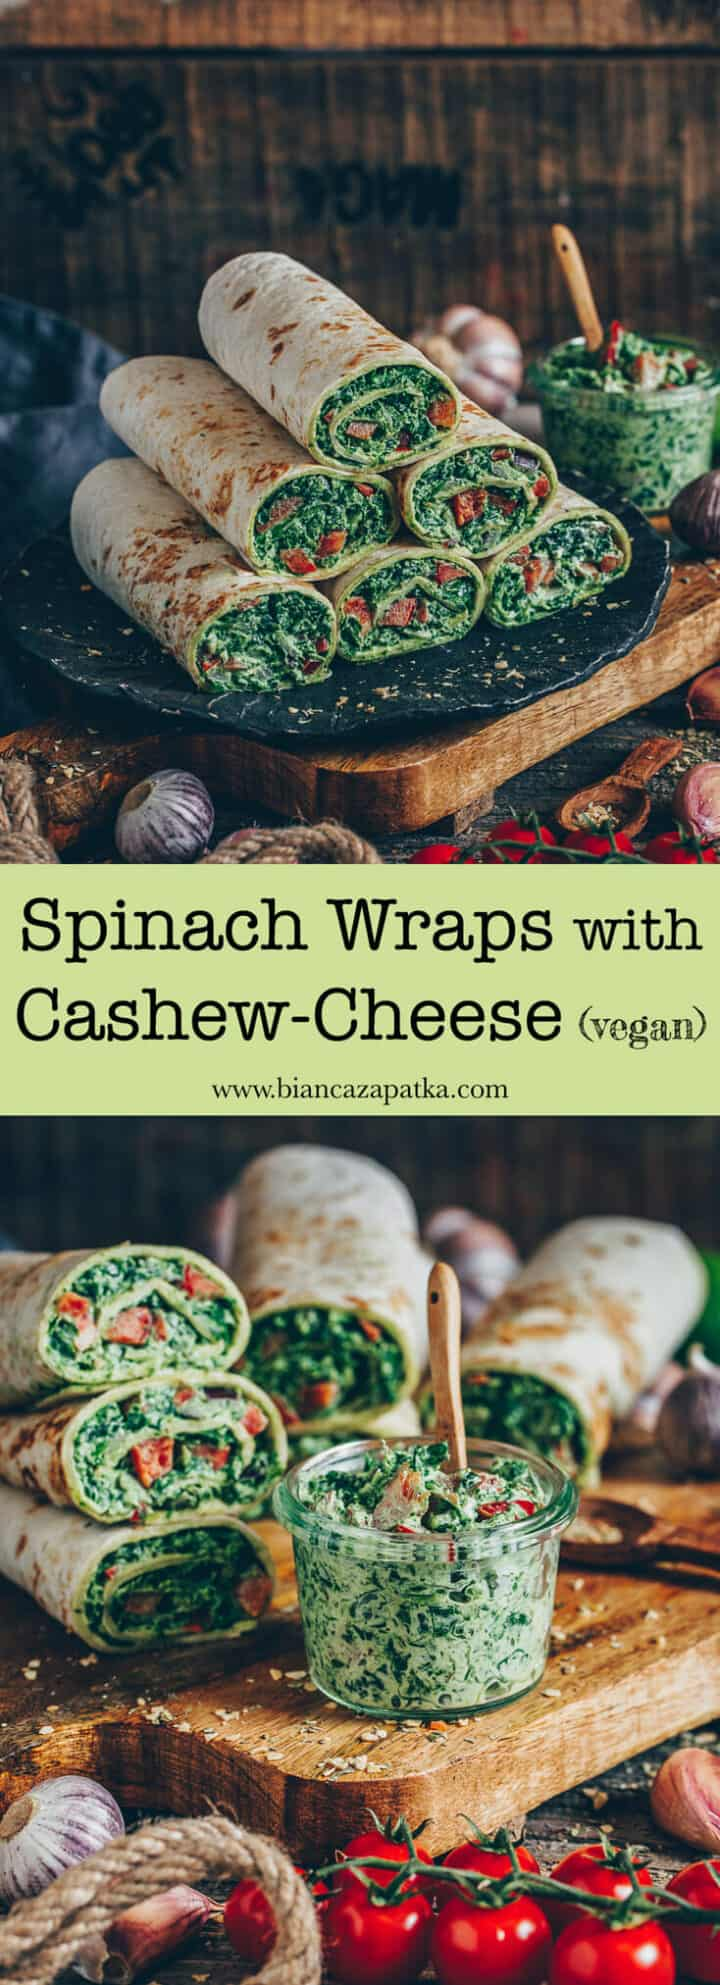 An easy recipe for spinach wraps with pepper and vegan cashew cheese. They are delicious, healthy and perfect to grab and go, for a quick meal or party snack.